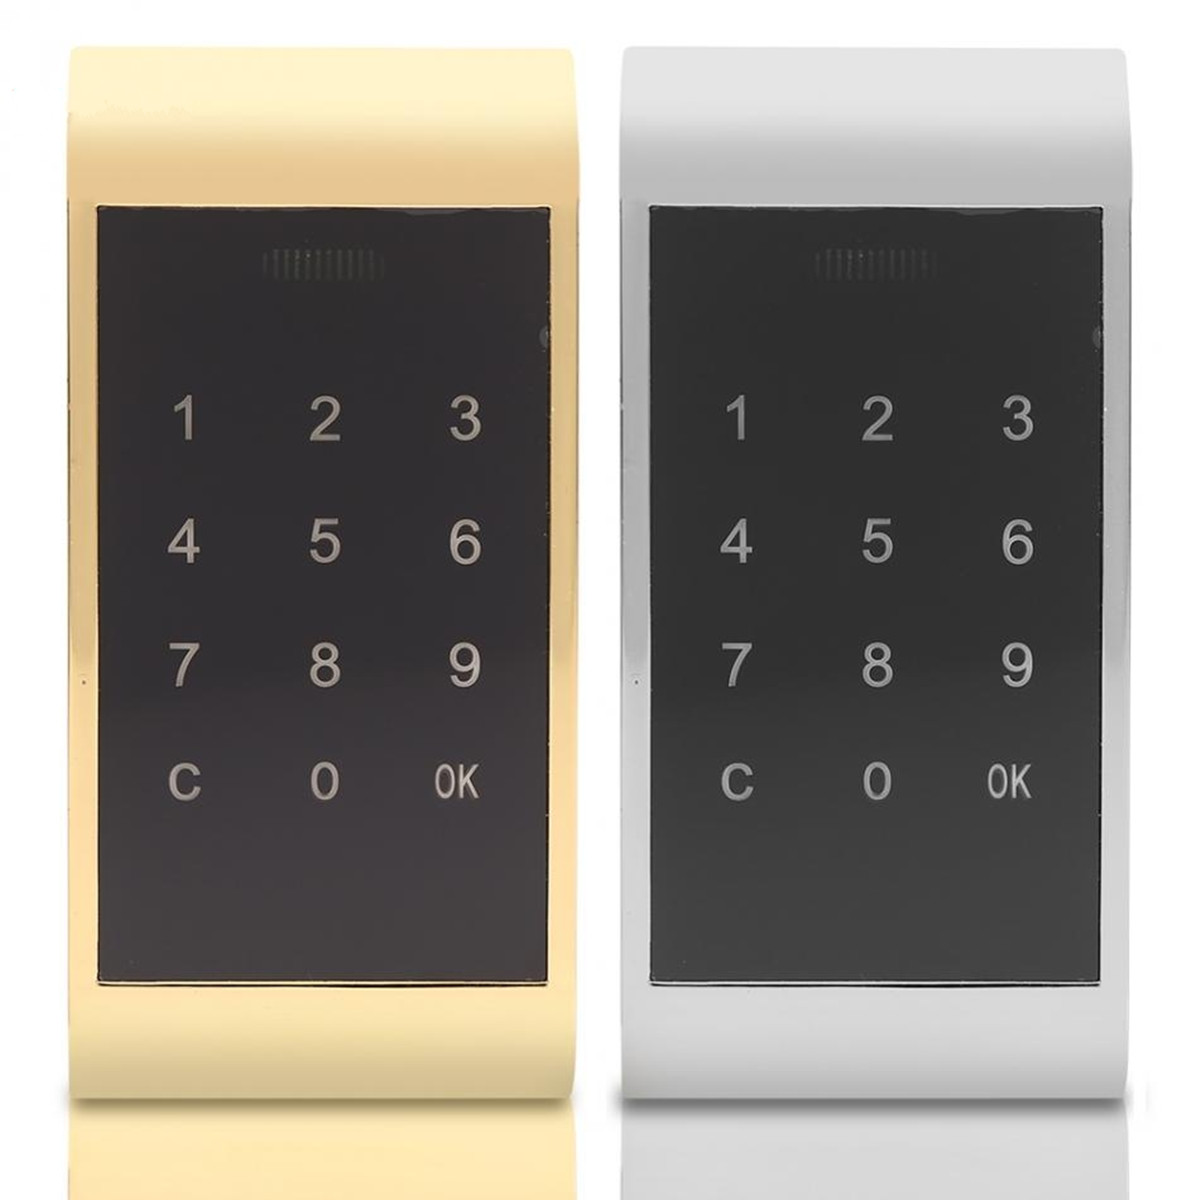 NEW Safurance Electronic Digital Touch Keypad Password Key Access Security Cabinet Code Lock Access Control Home Security electronic password cabinet lock induction touch keypad password key lock digital electric cabinet coded locker